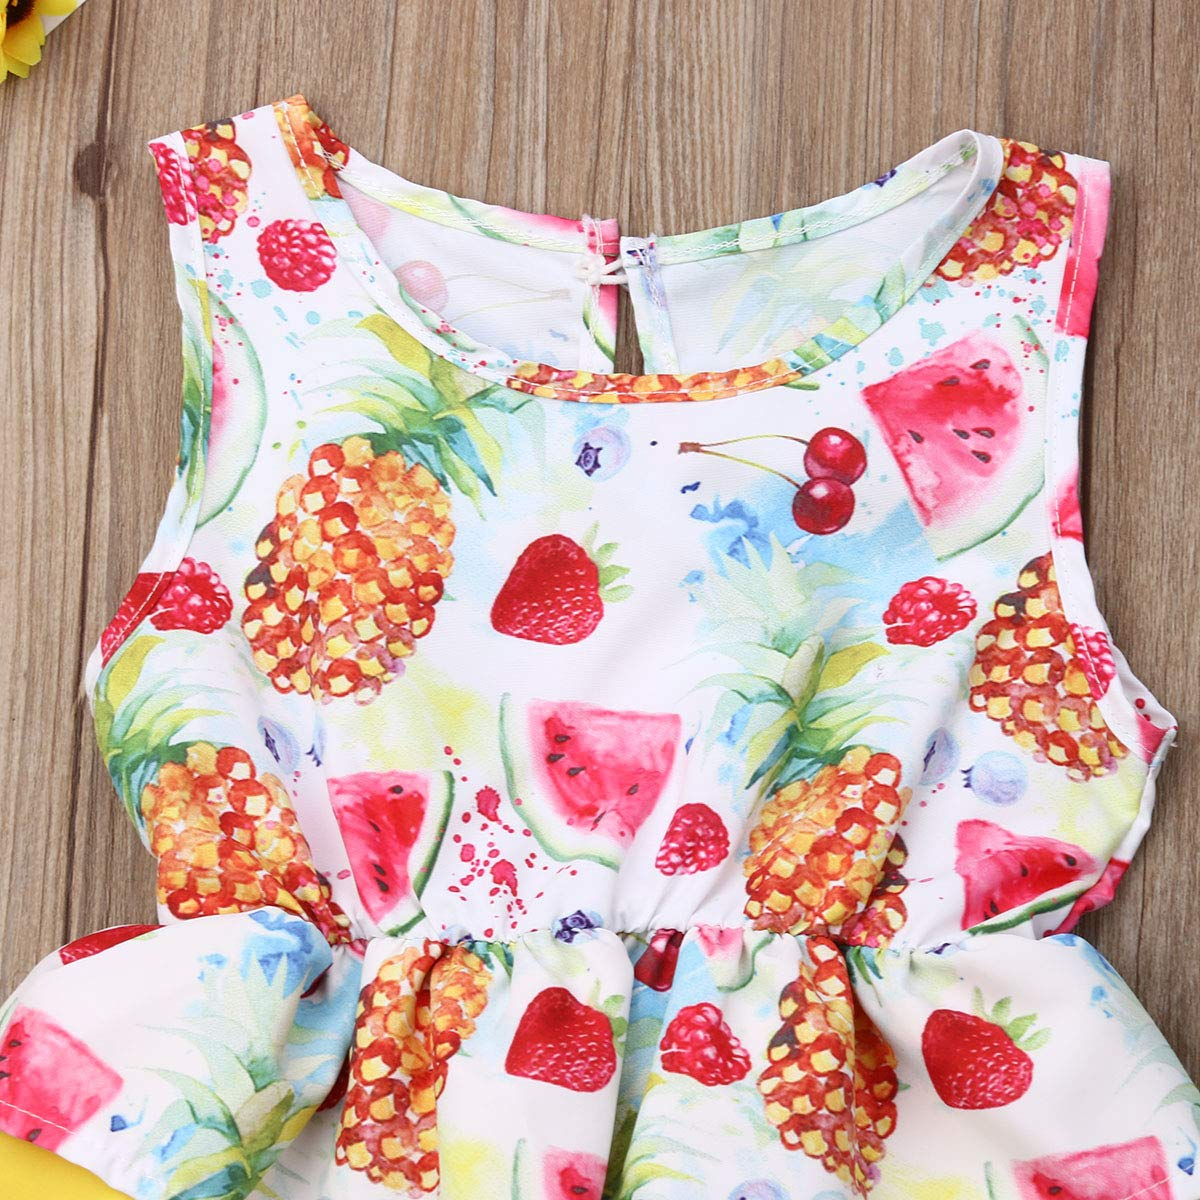 Lefyira Infant Baby Girls Tutu Rompers Dress Ruffle Backless Bodysuit Dance Clothes for Photography